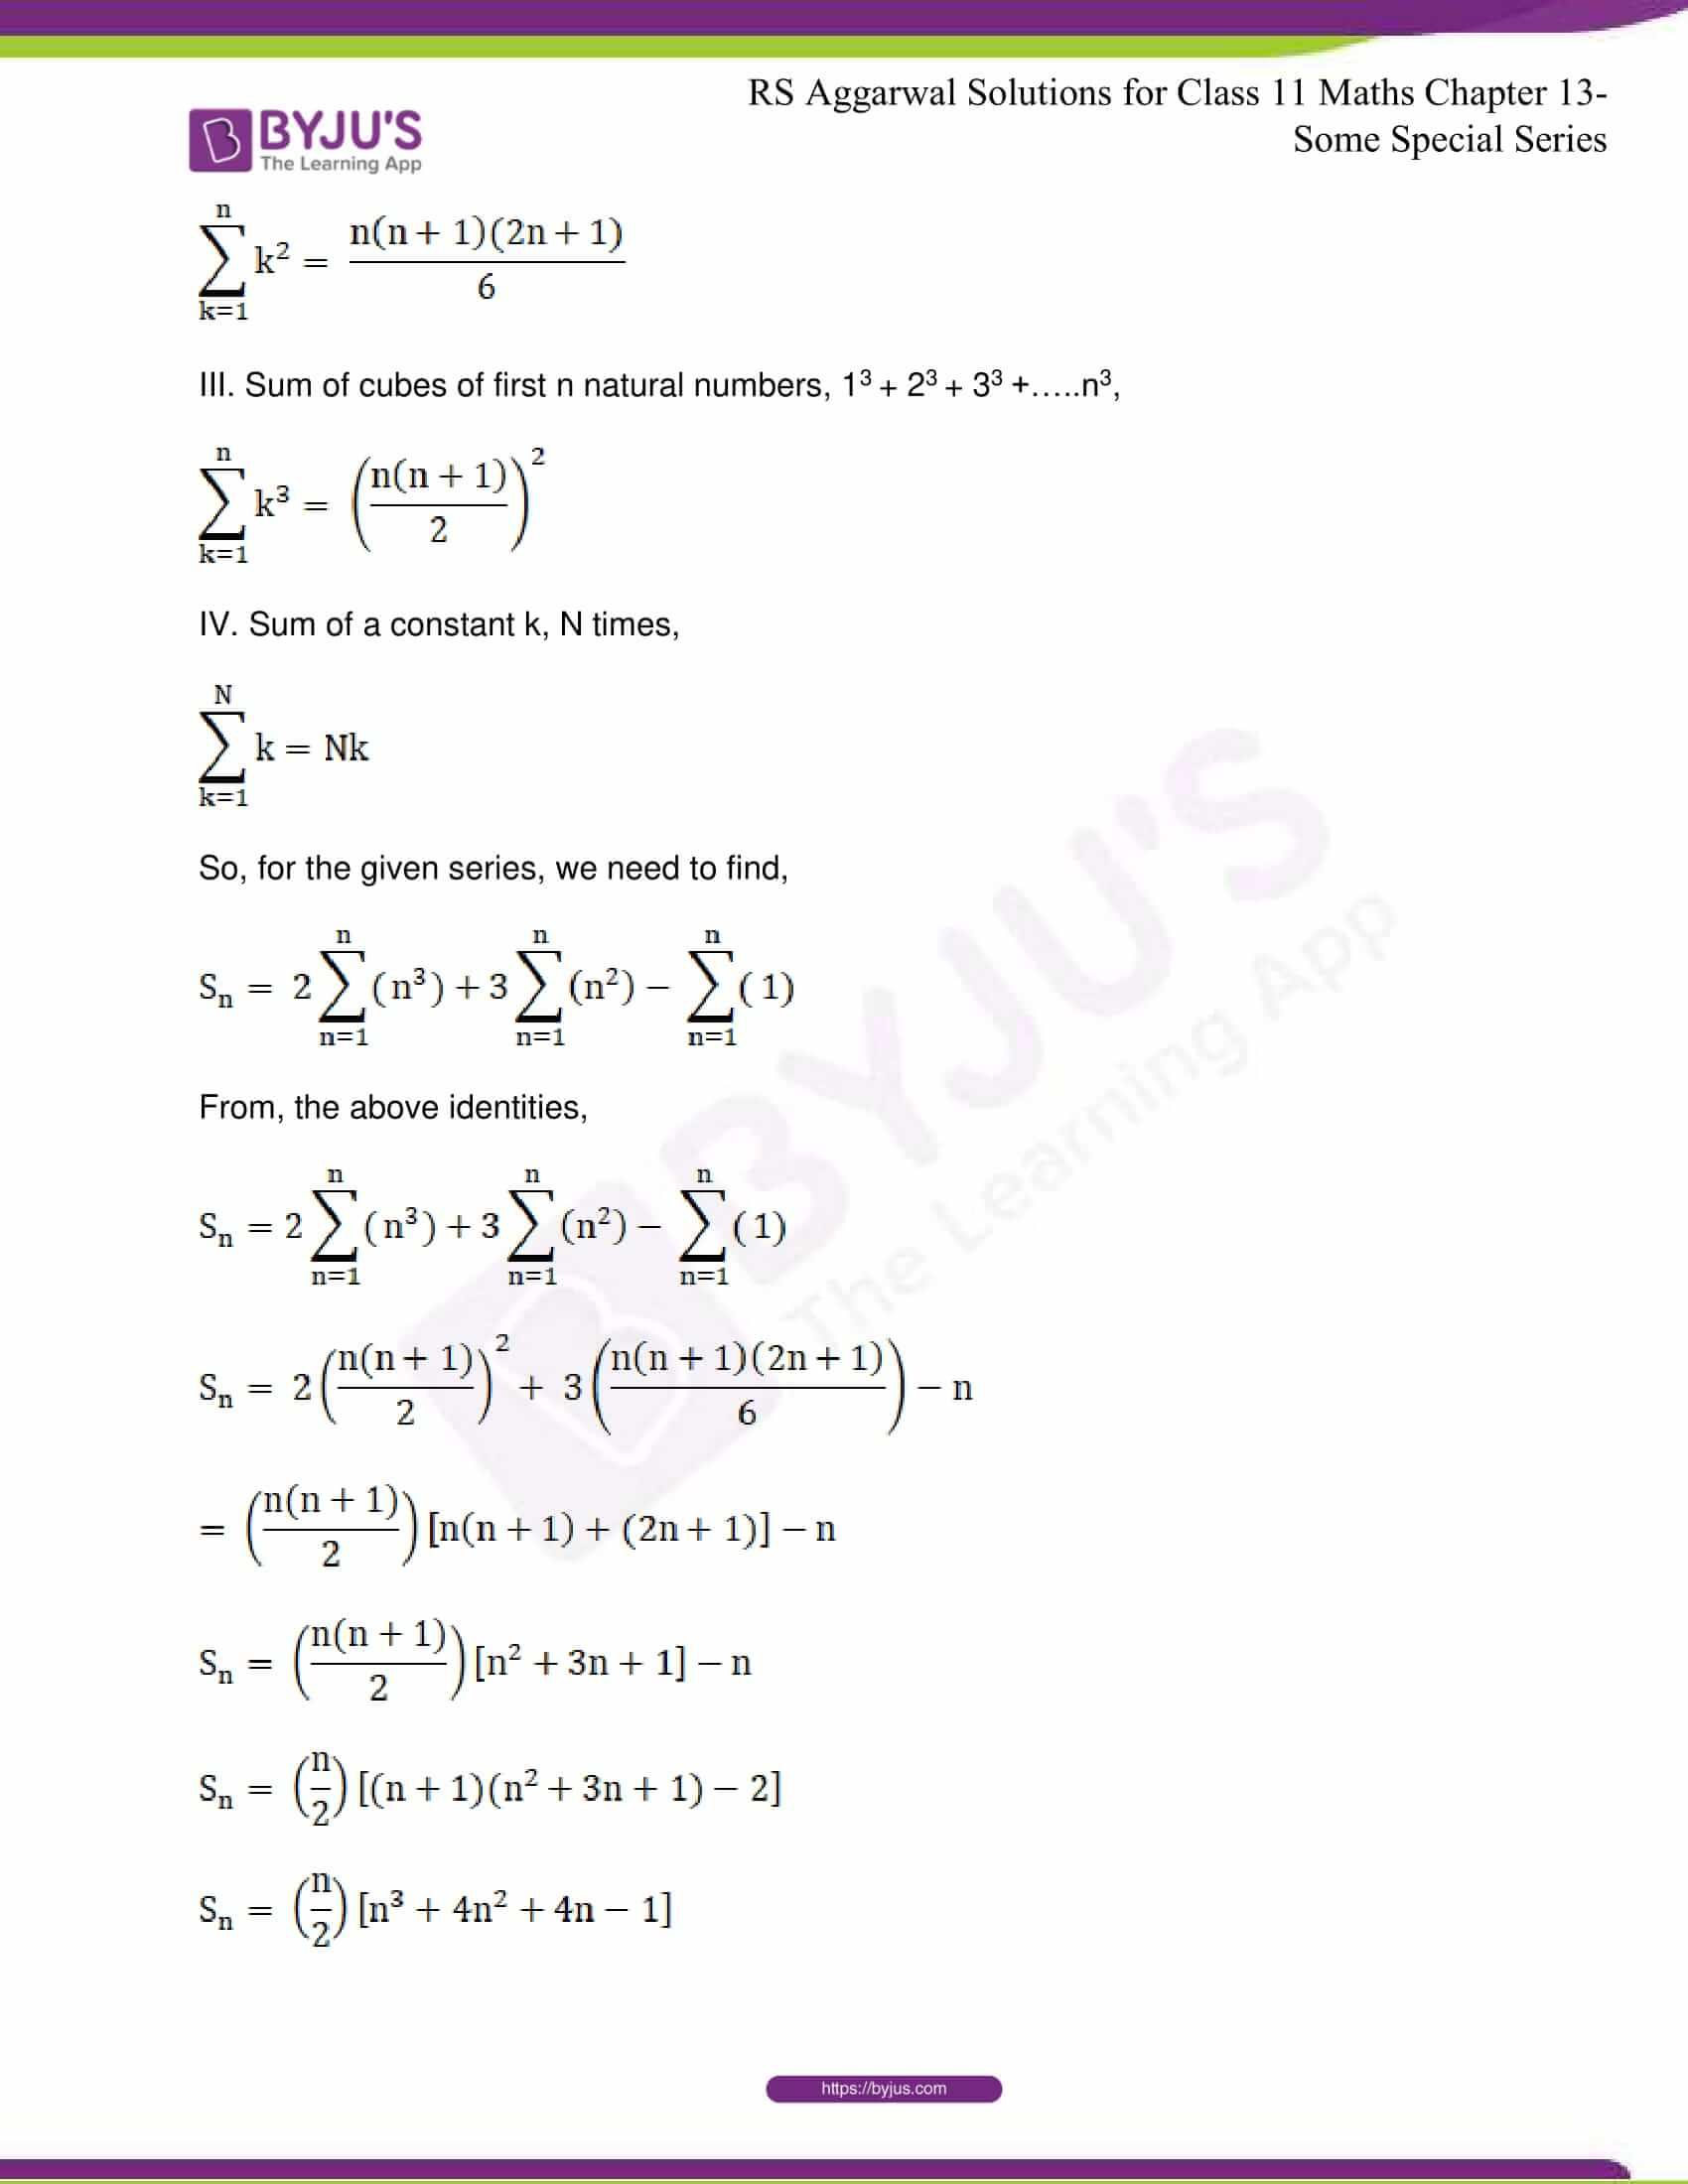 rsaggarwal solutions class 11 maths chapter 13 24